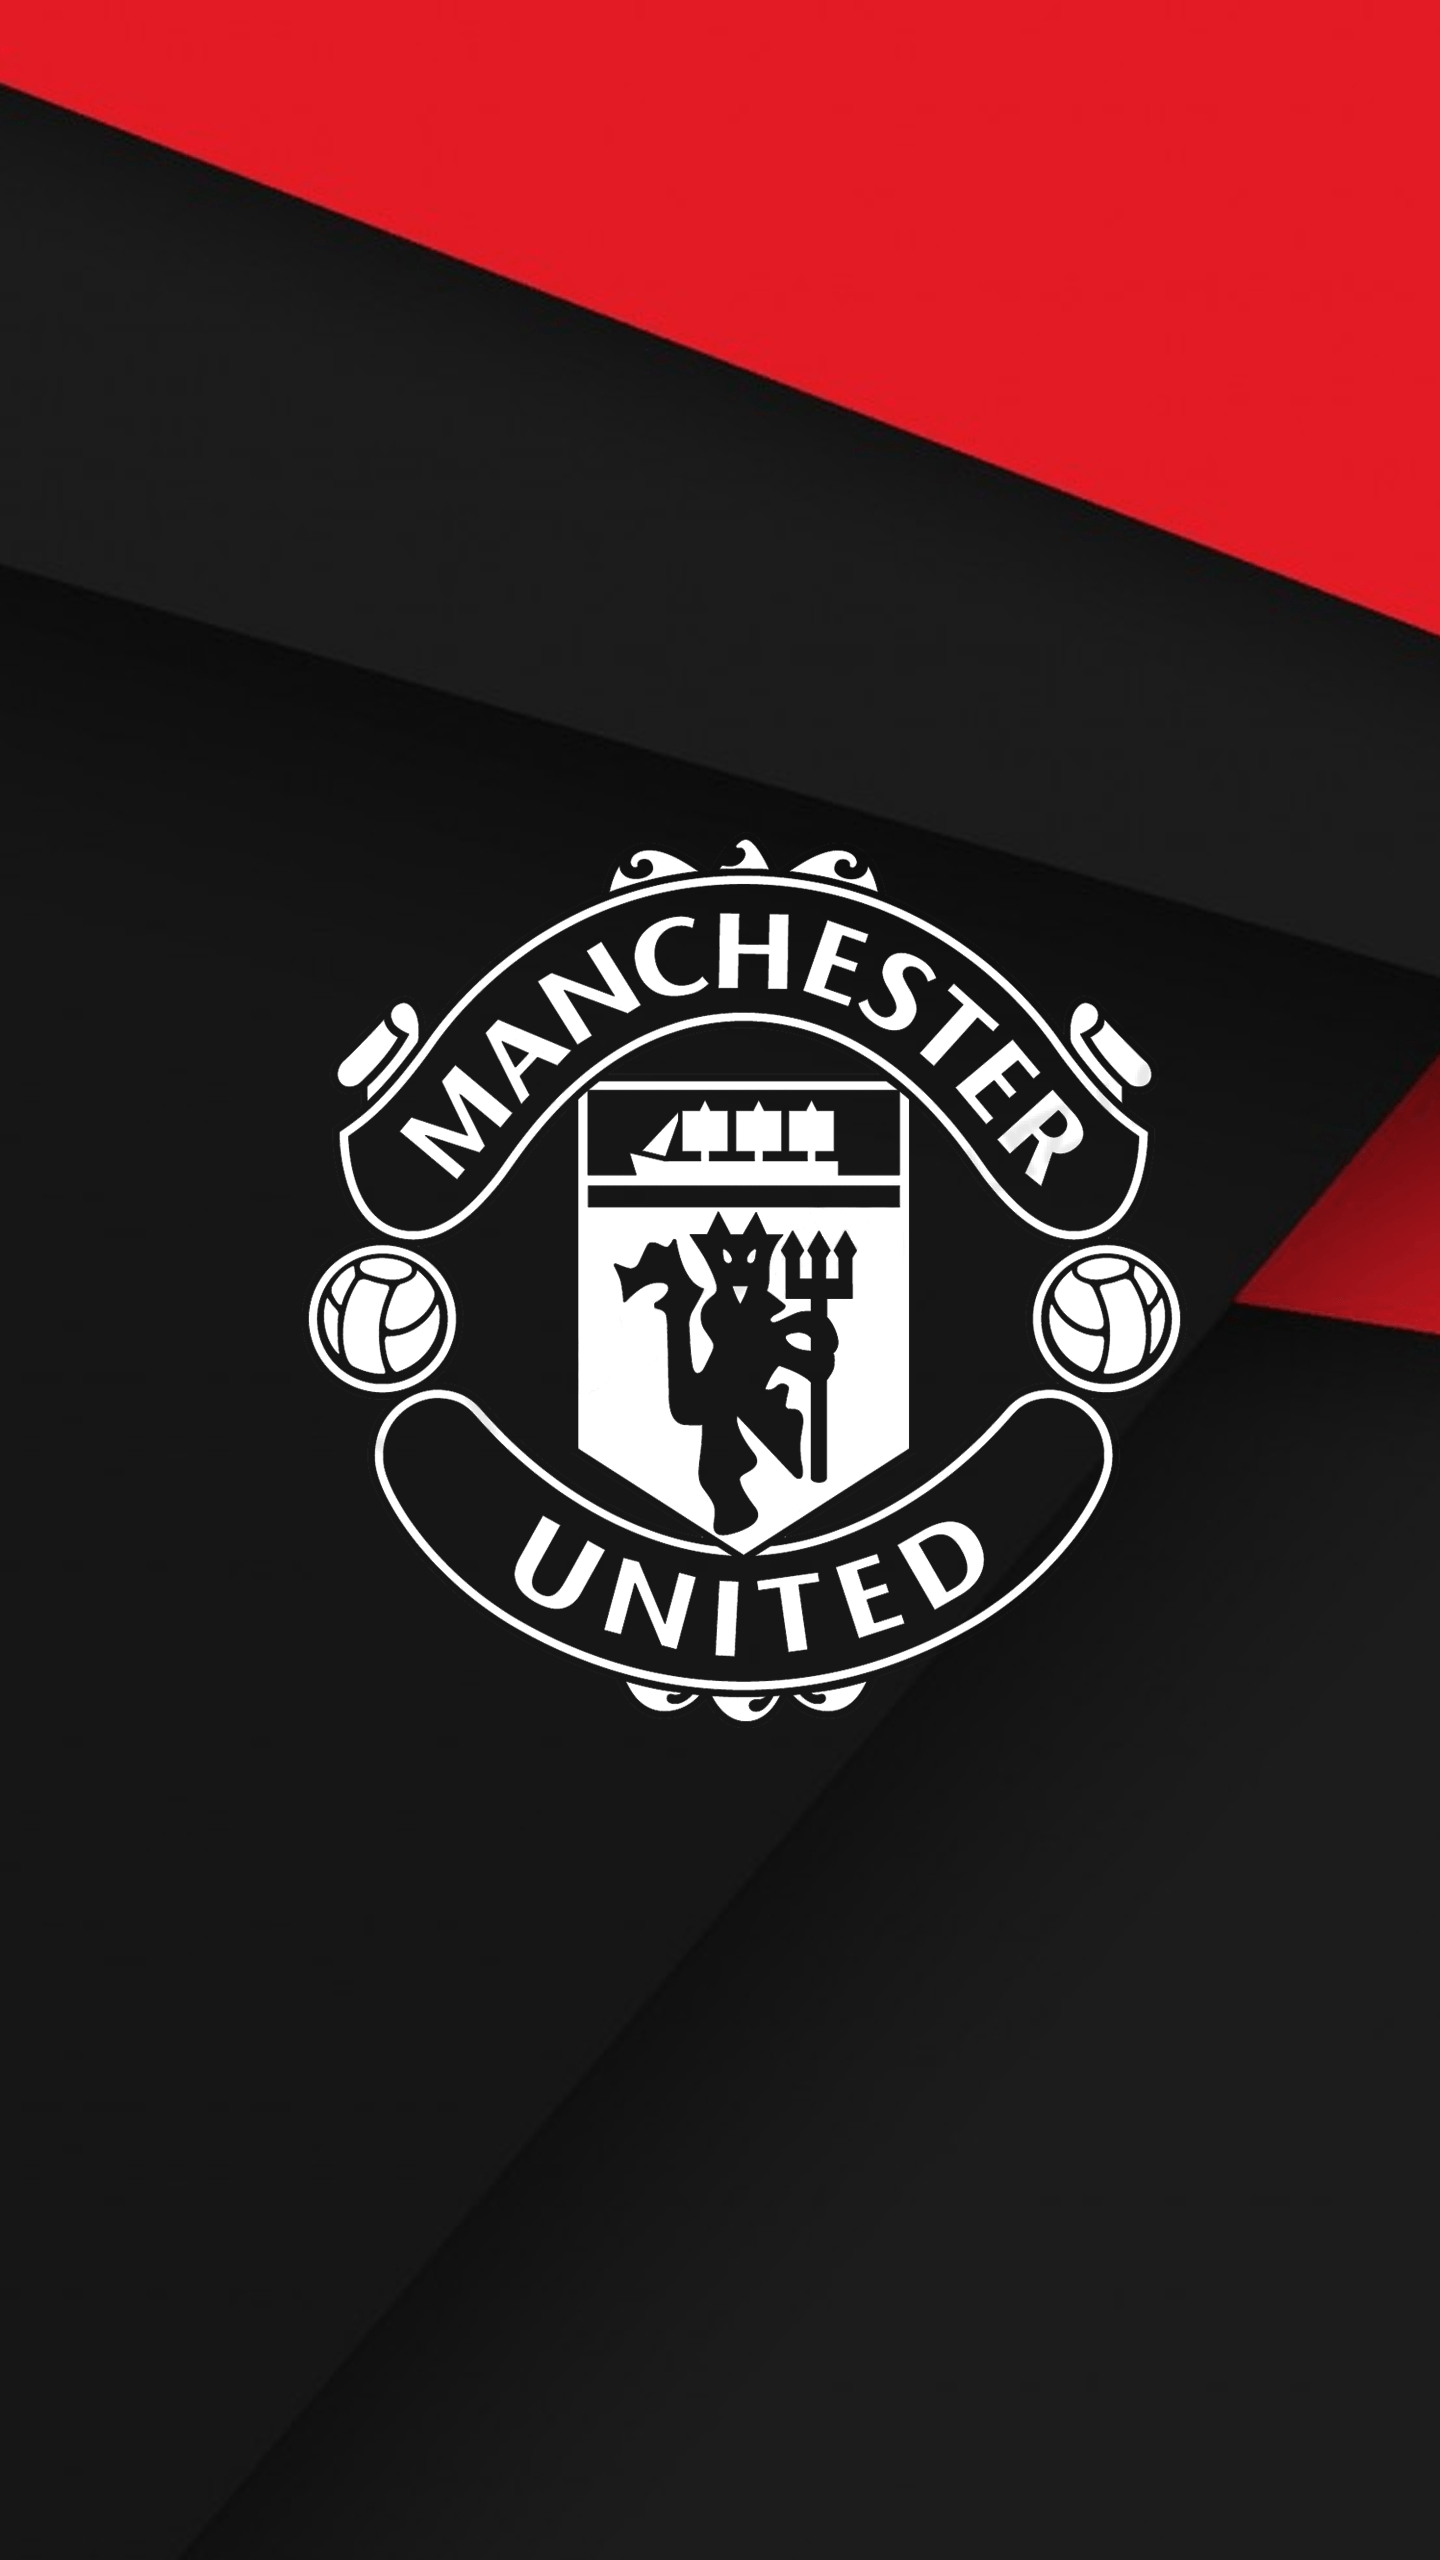 manchester united 2020 wallpapers wallpaper cave manchester united 2020 wallpapers